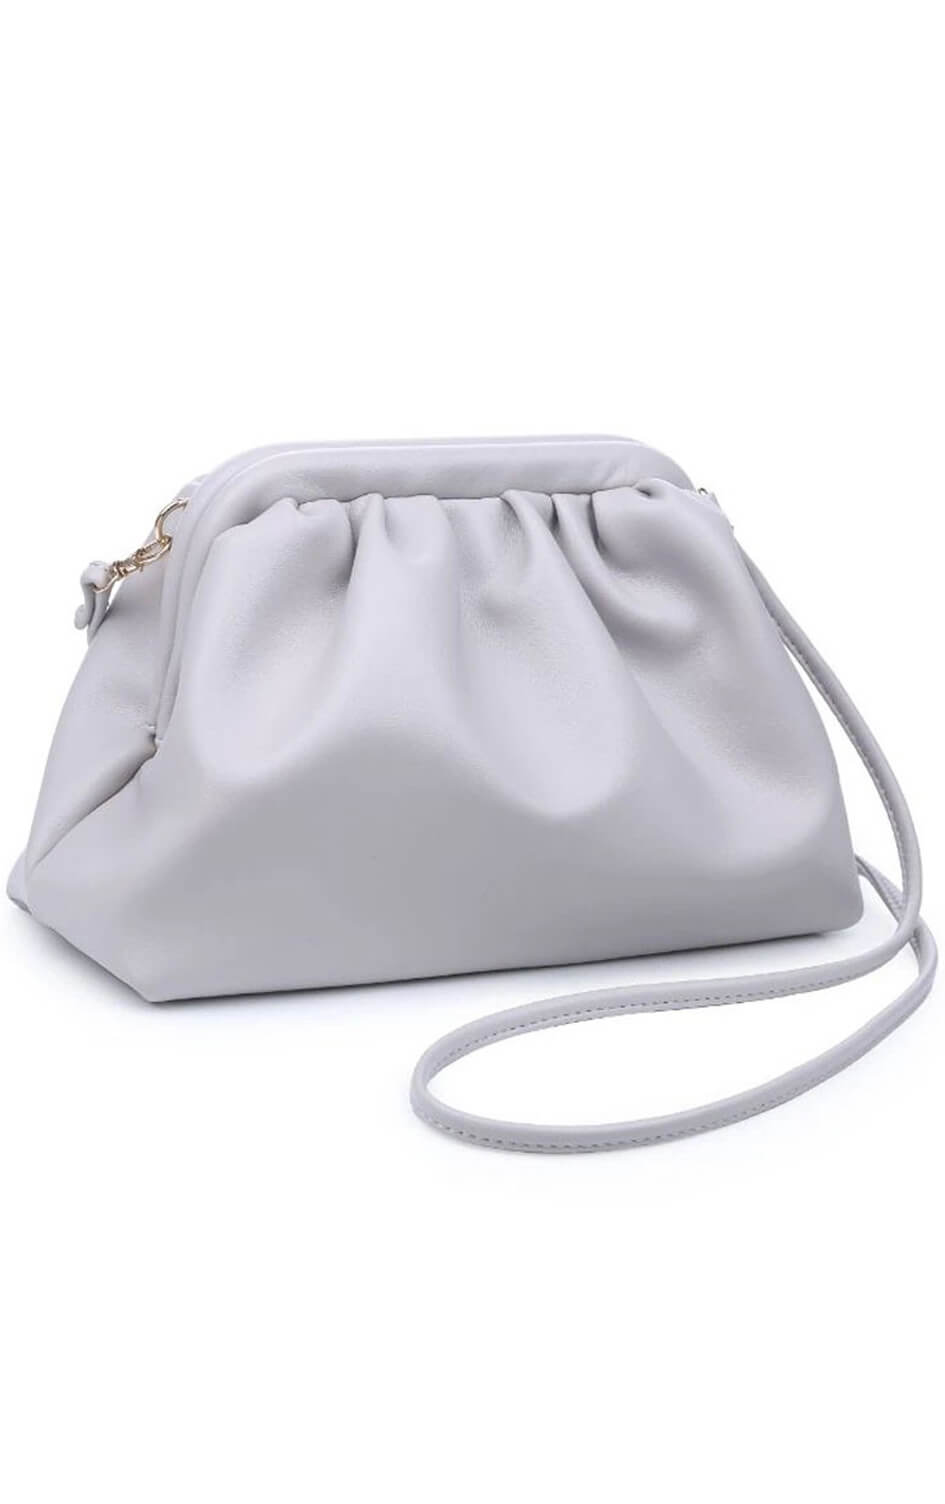 shop-dana-scott-light-dove-grey-leather-maison-pouch-clutch-cross-body-purse